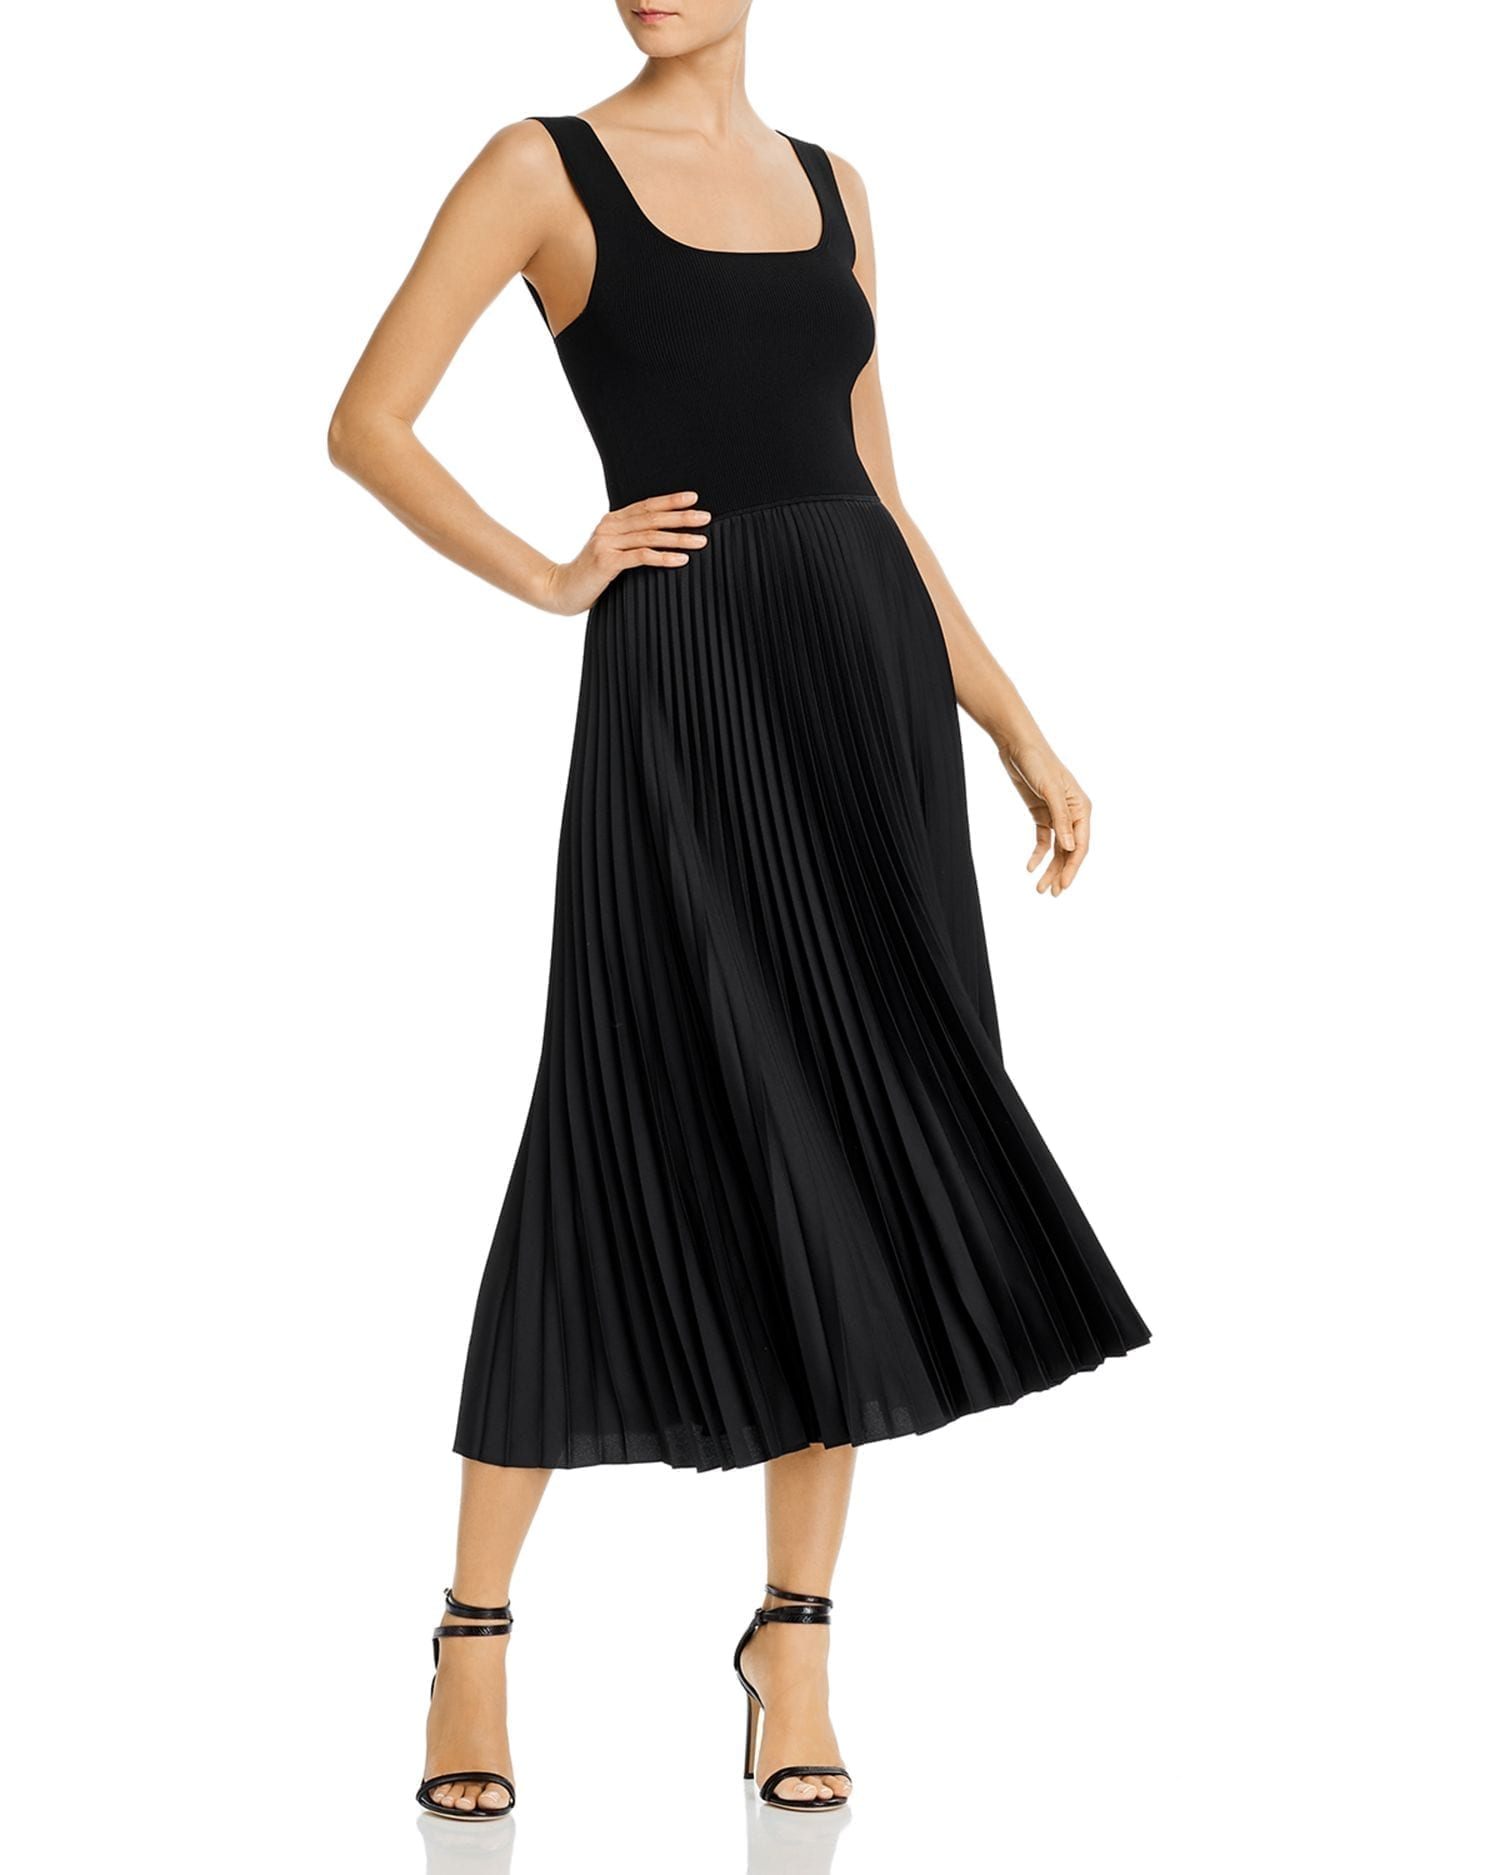 THEORY Square-Neck Ribbed Midi Dress